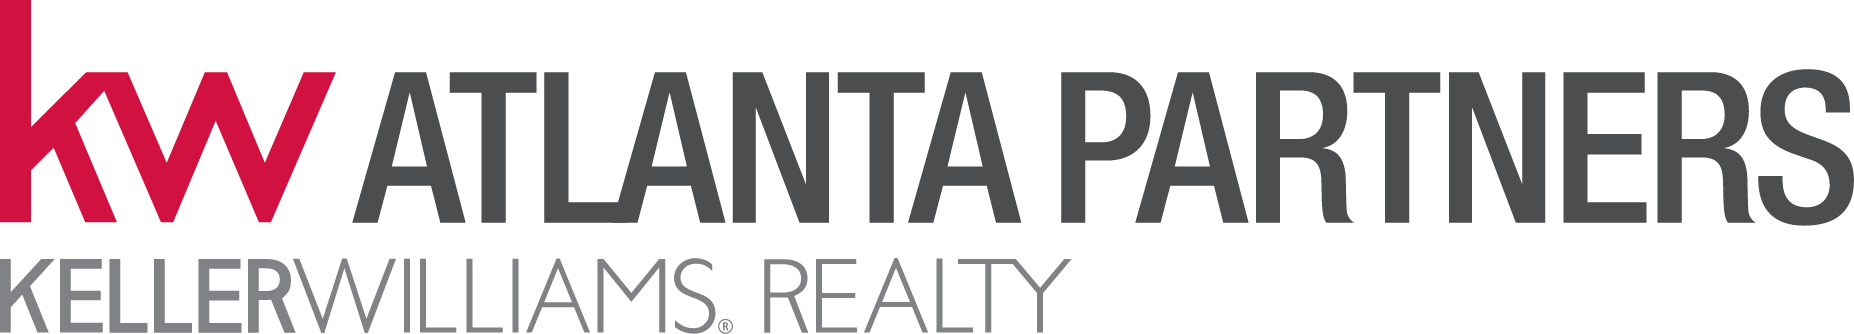 Keller Williams Realty Atlanta Partners Atlanta Northeast